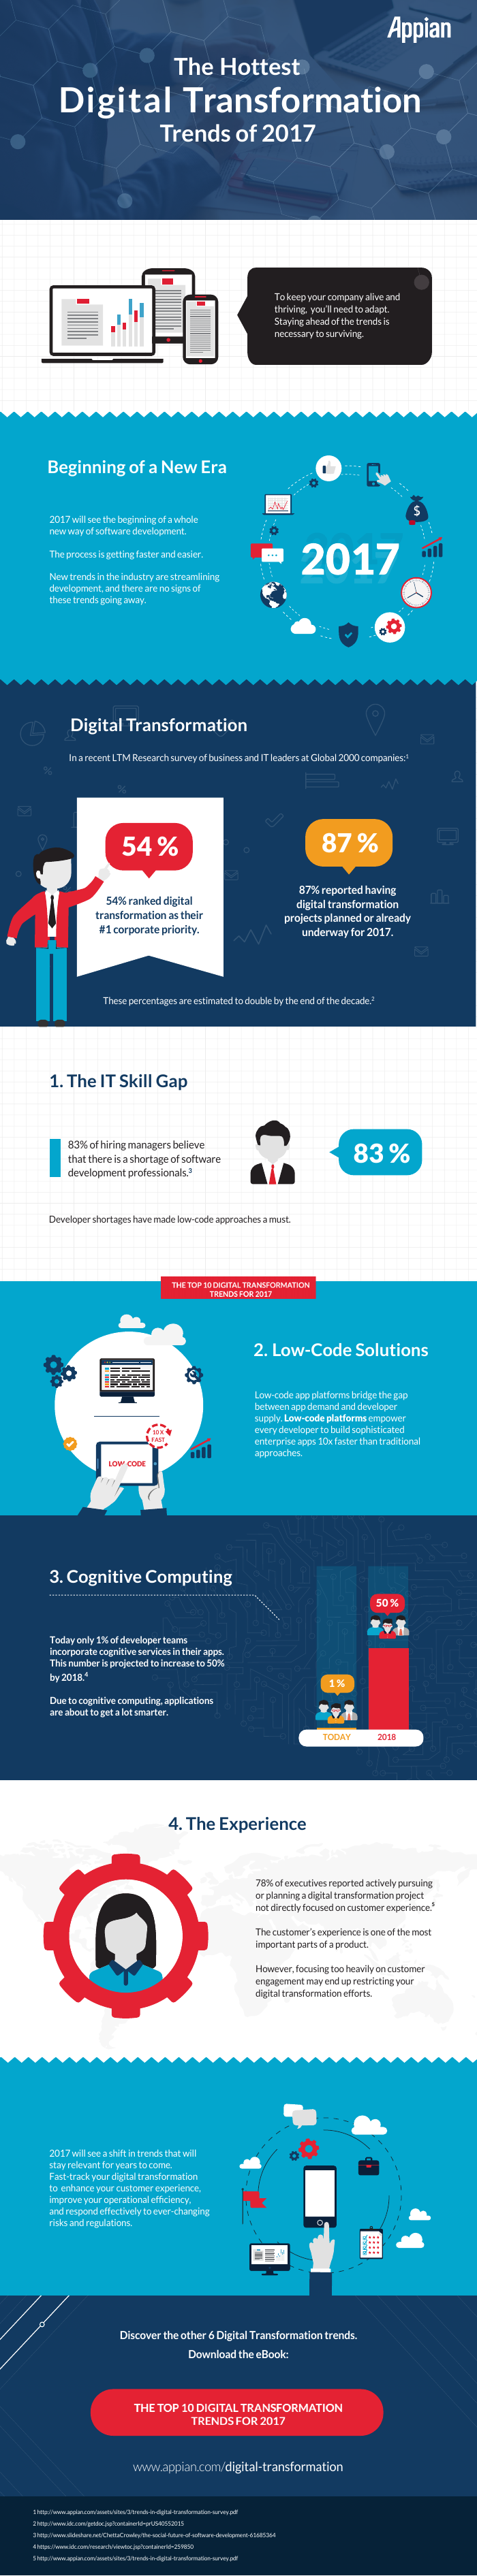 [Infographic] Digital Transformation - What's Trending